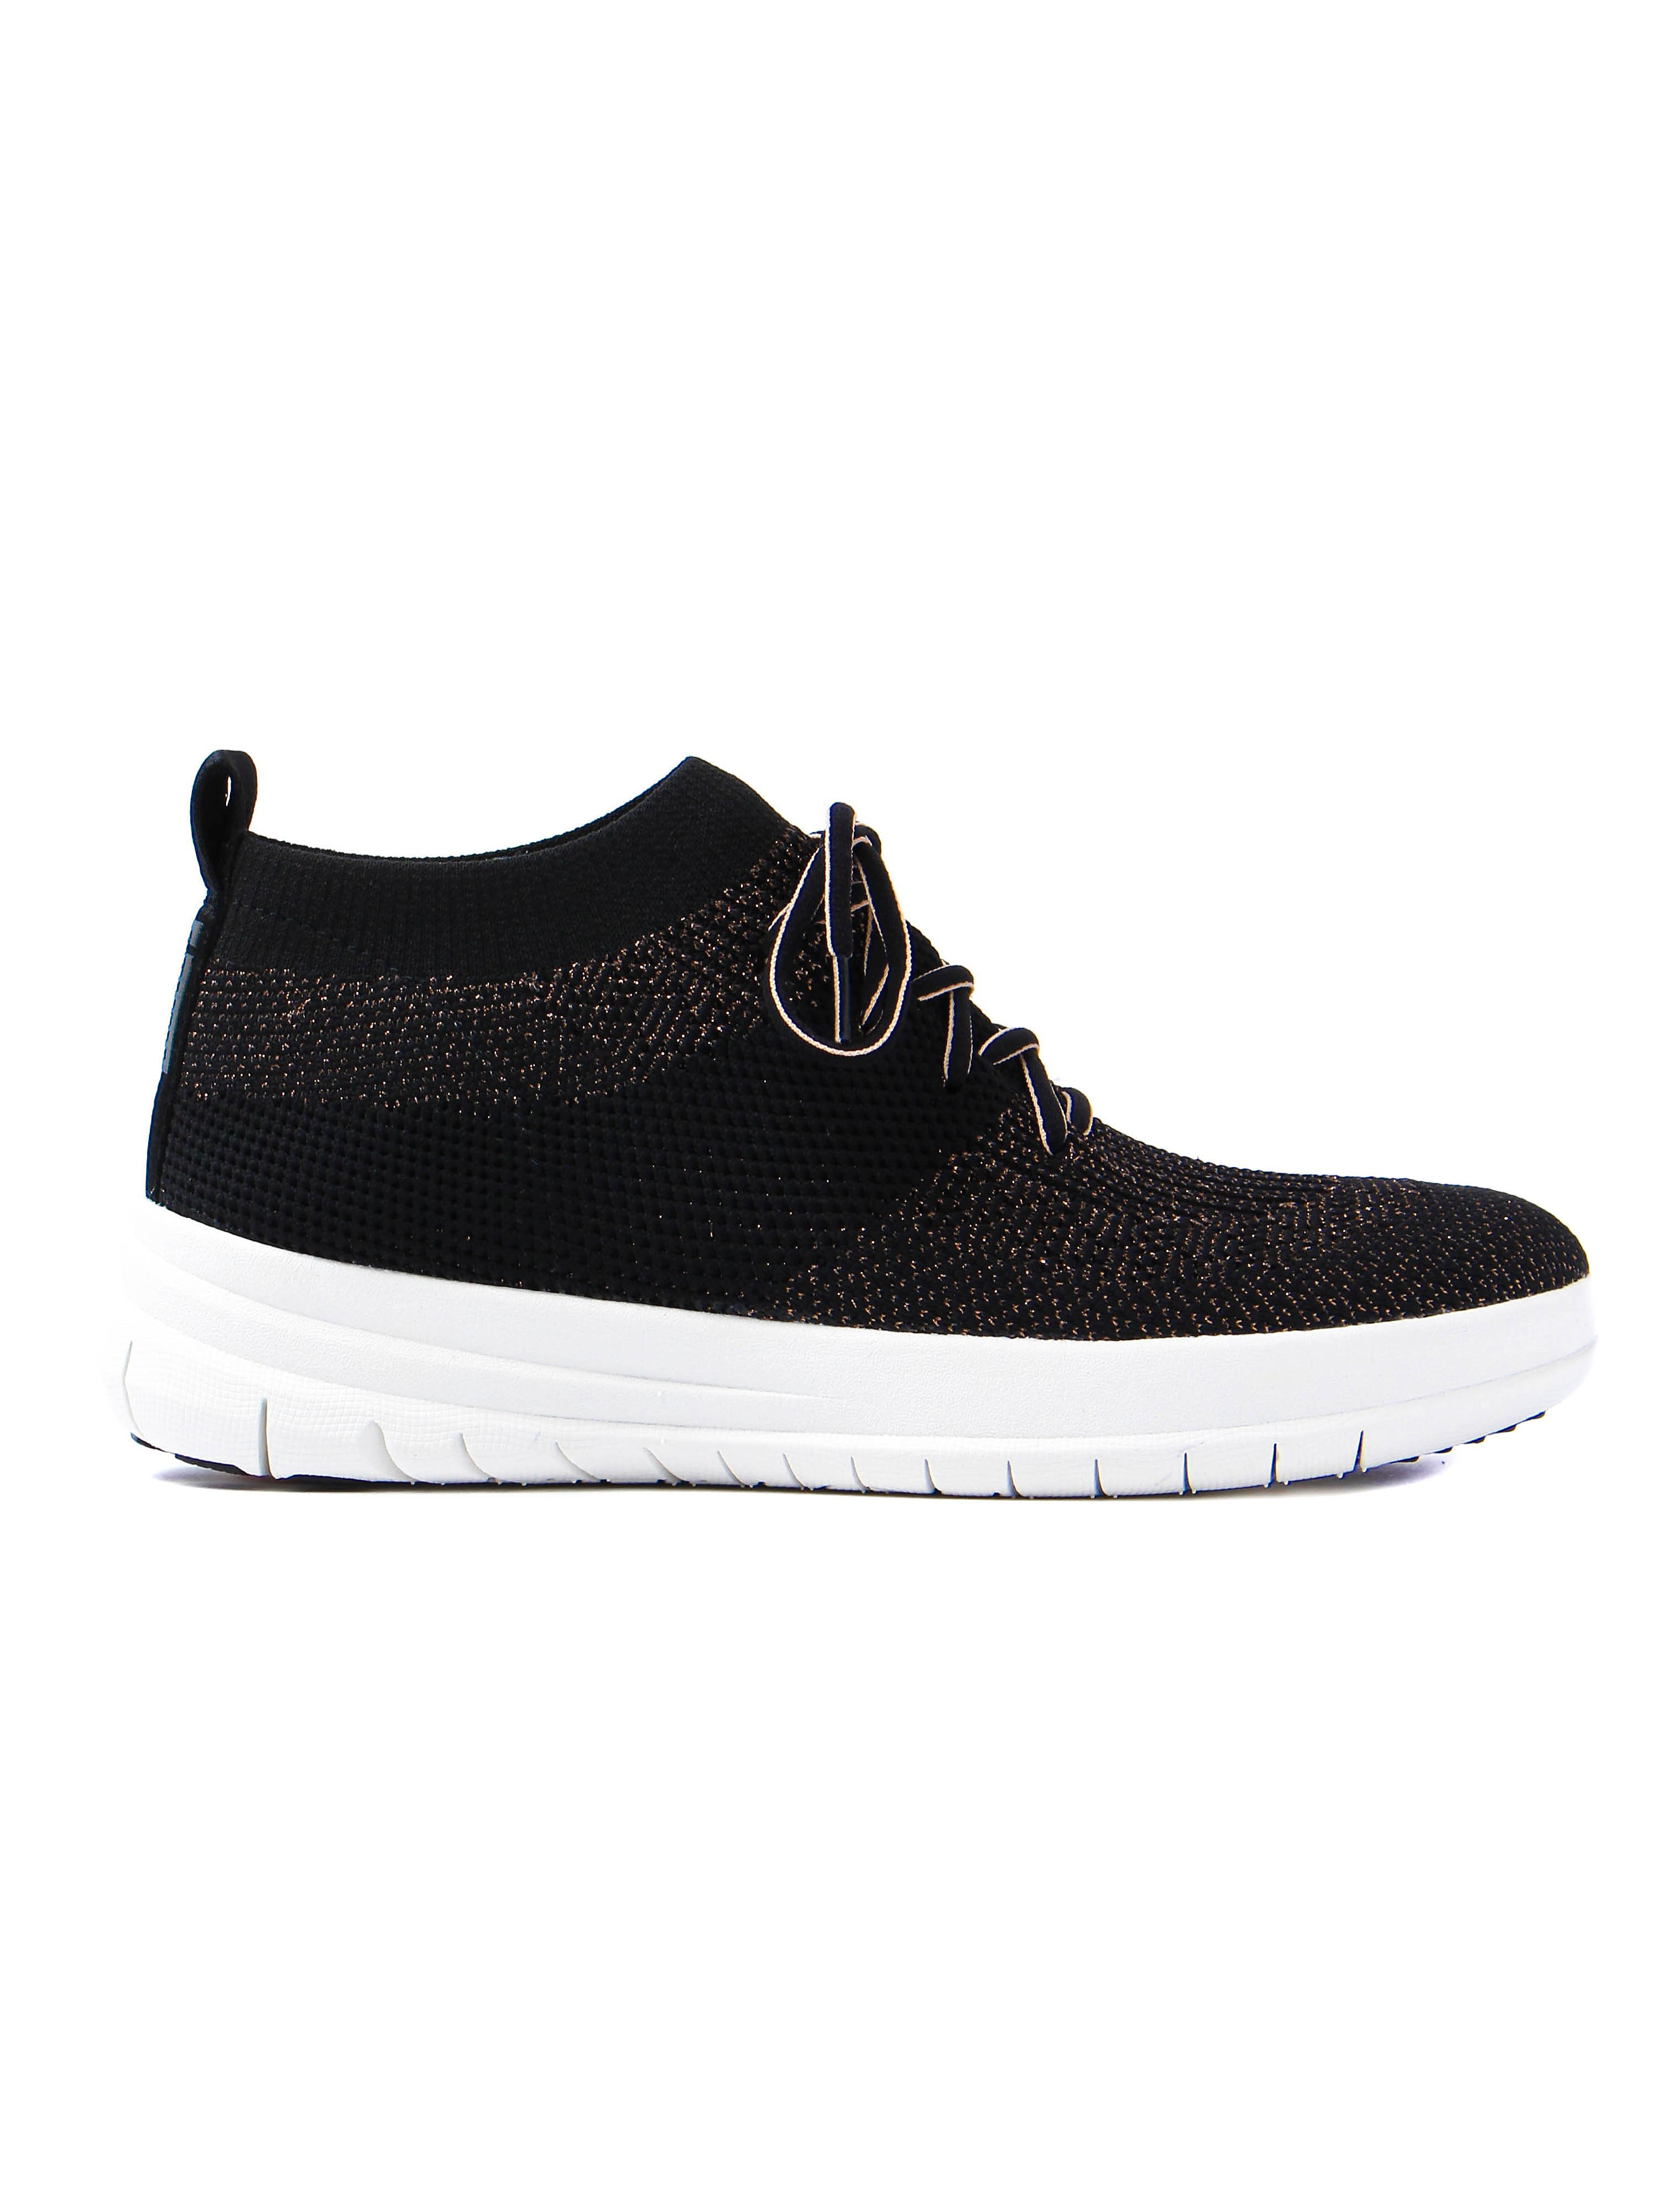 FitFlop Women's Uberknit Metallic Fleck High Top Trainers - Black